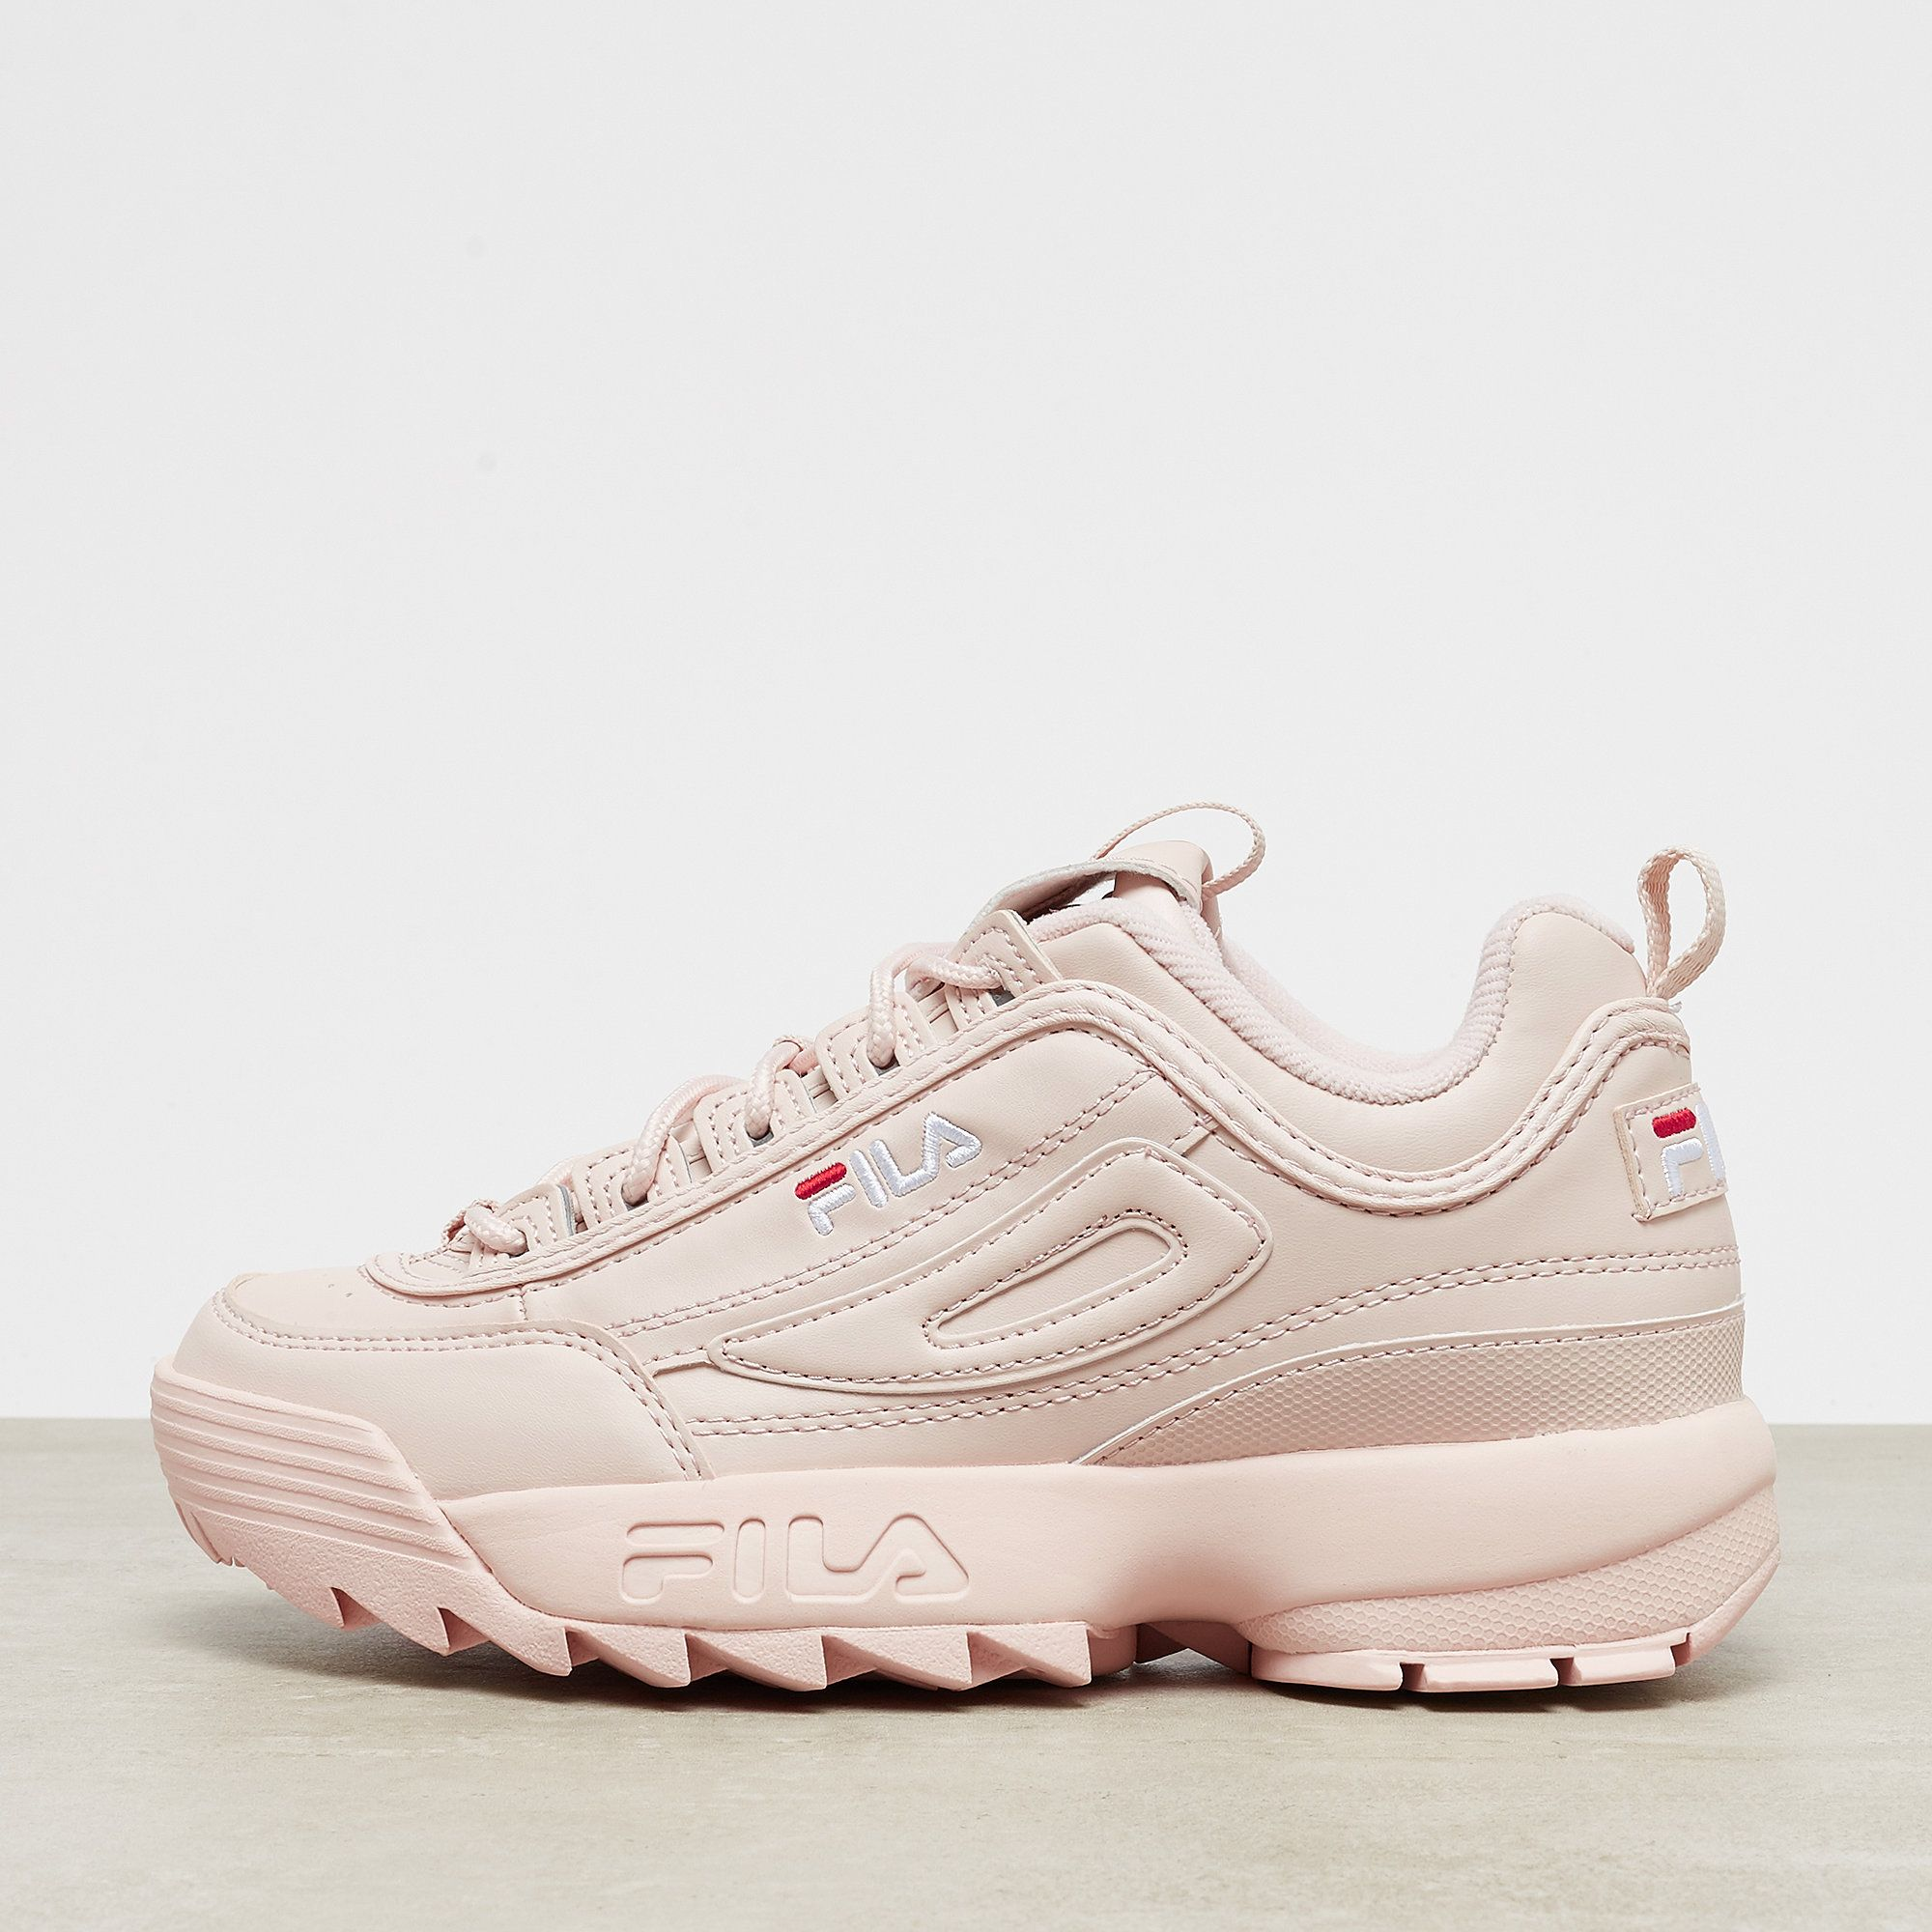 Fila Disruptor Low peach whip | Shoes in 2019 | Fila schuhe, Schuhe ...